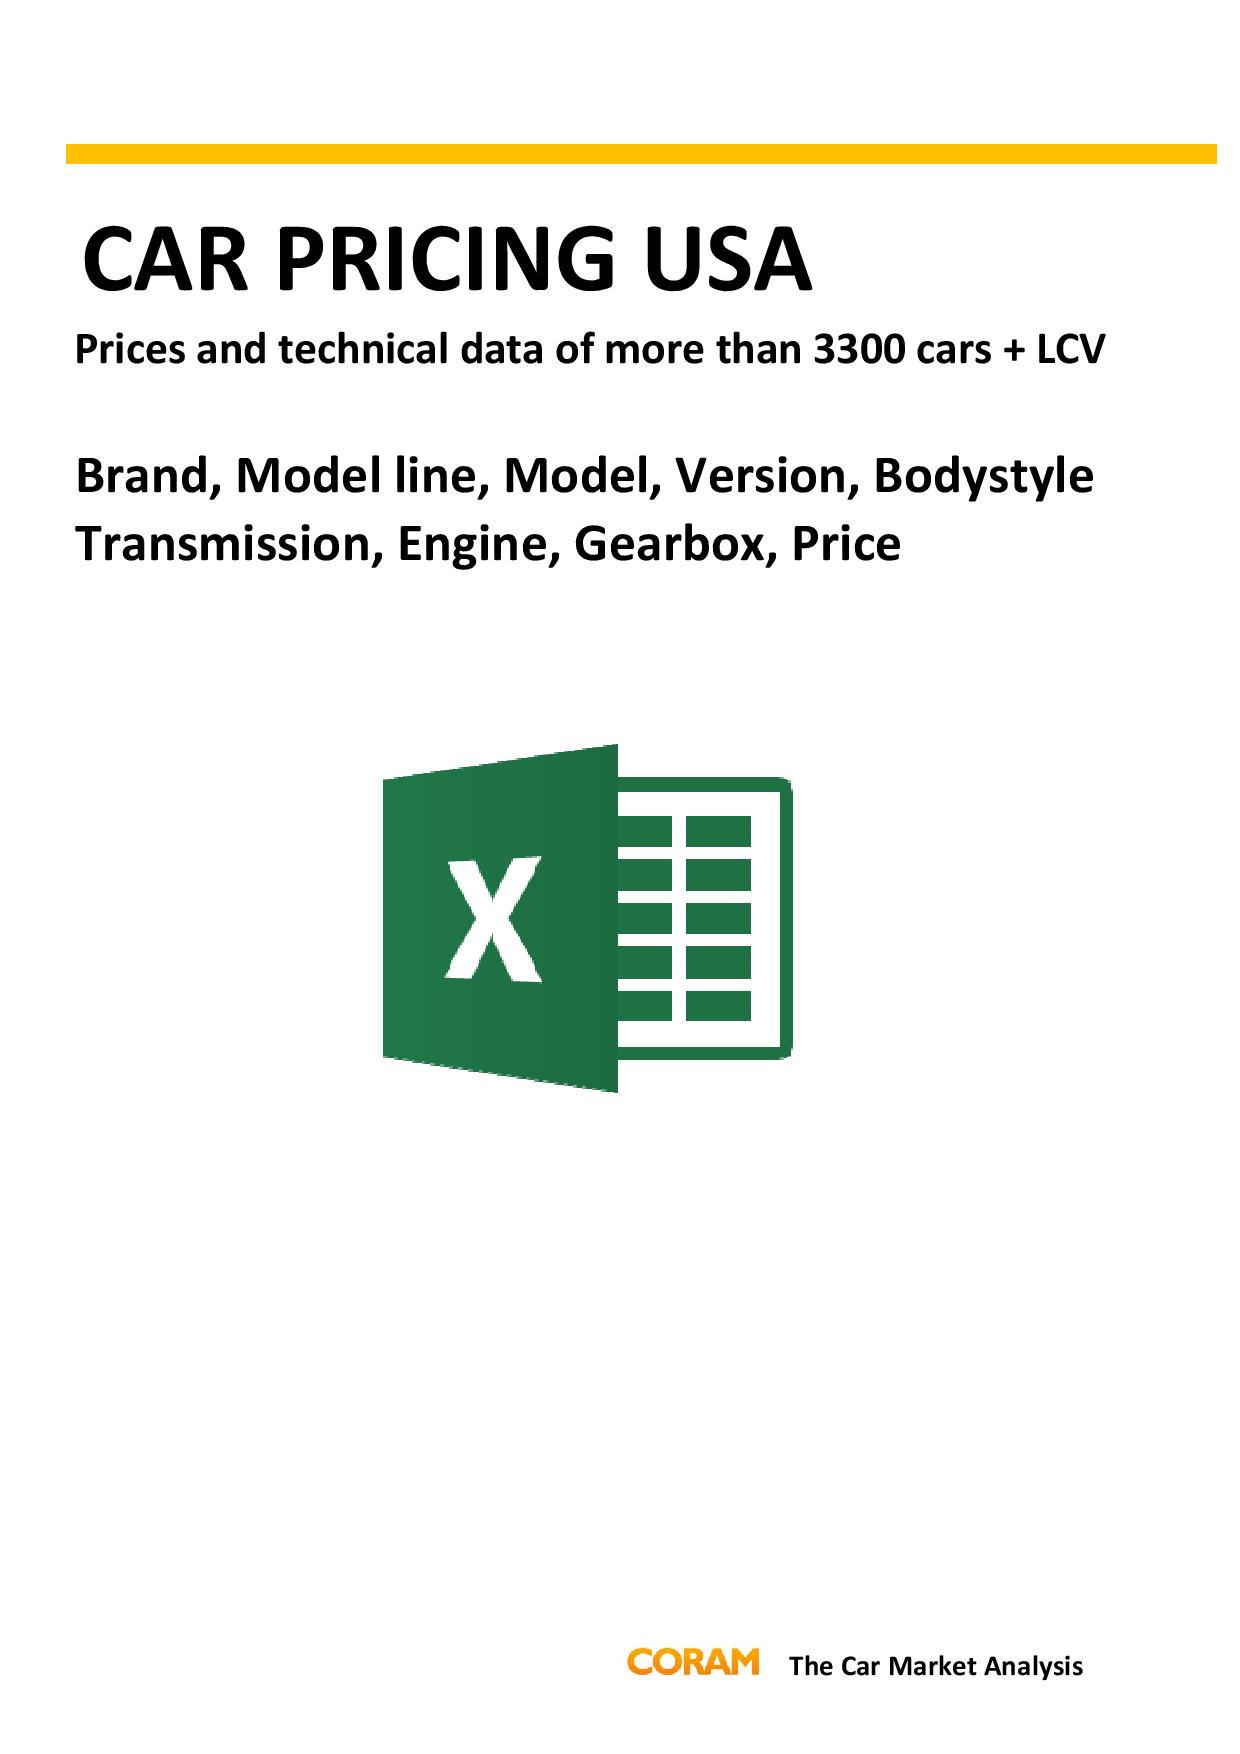 Car Pricing USA : November 2016